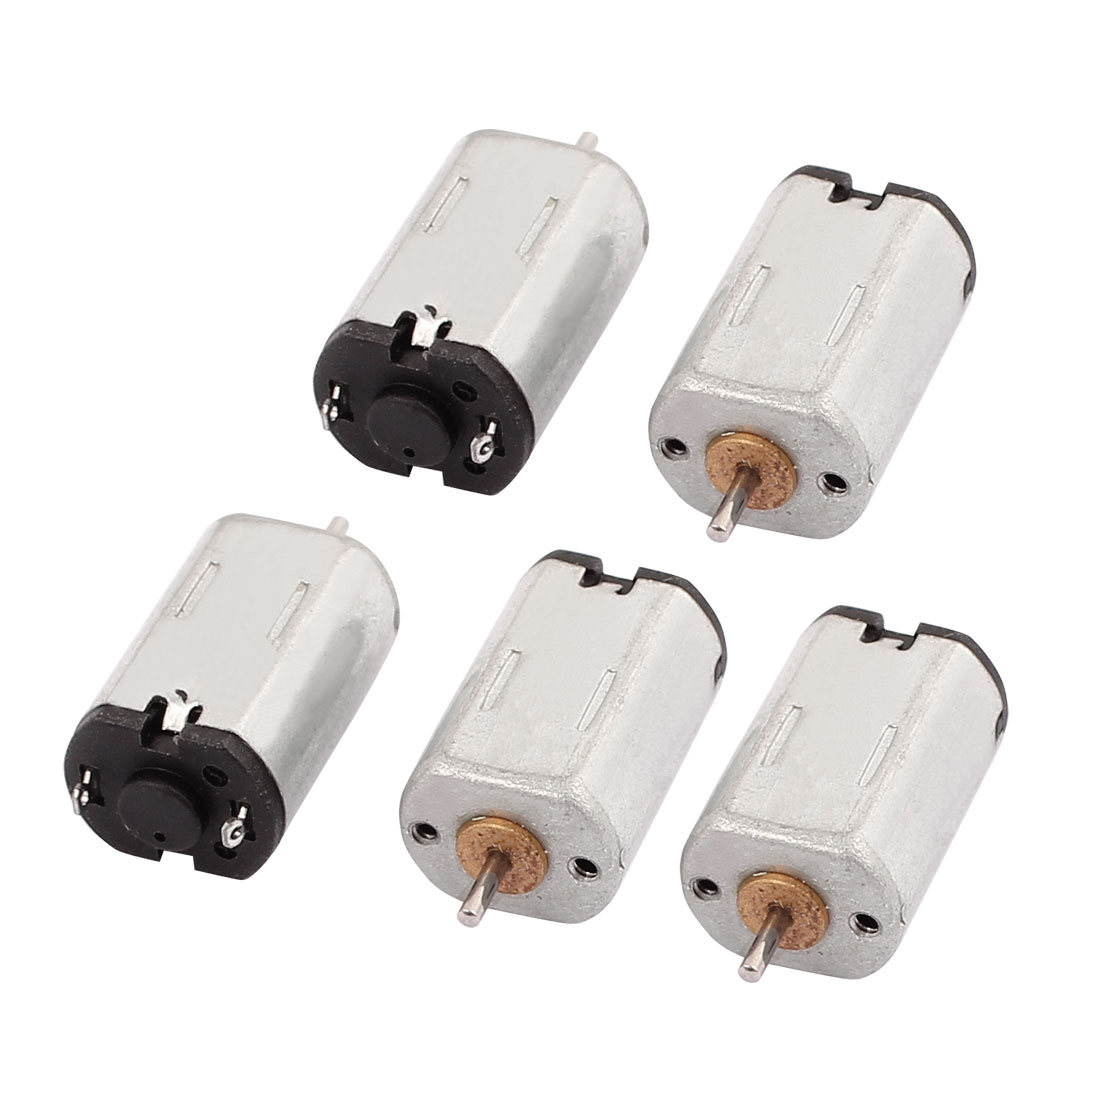 5Pcs DC 1.5-6V 21500RPM Large Torque High Speed Micro Vibration Motor for Electric Toy